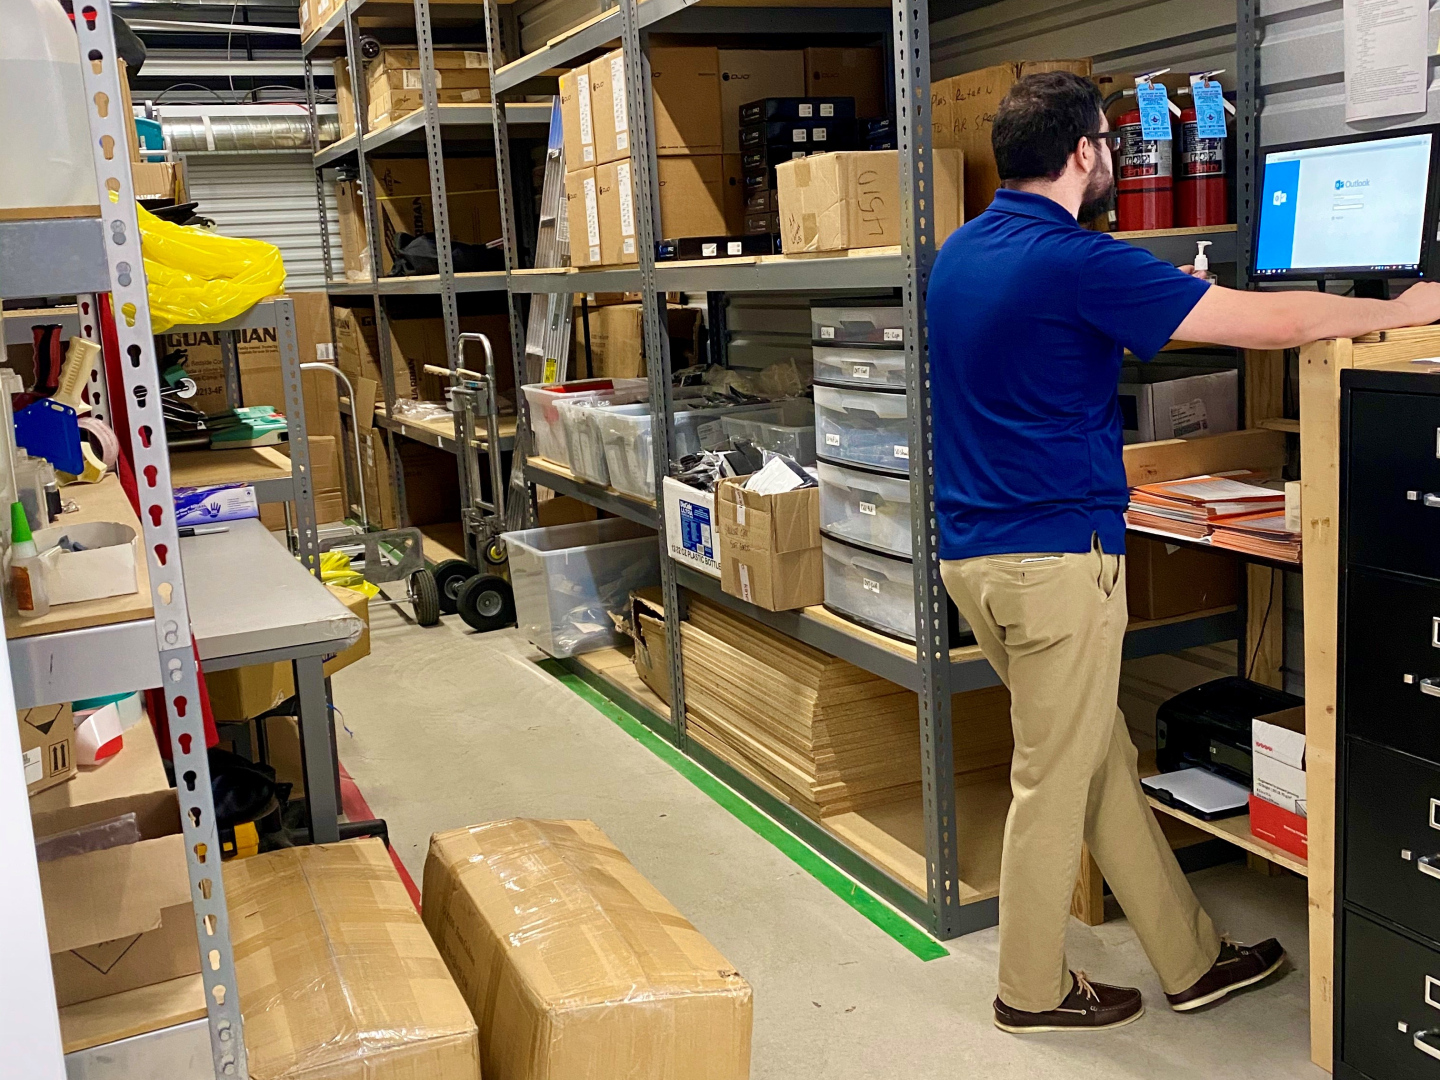 Photo of person inside an organized storage unit. Get organization tips from the Modern Storage experts!